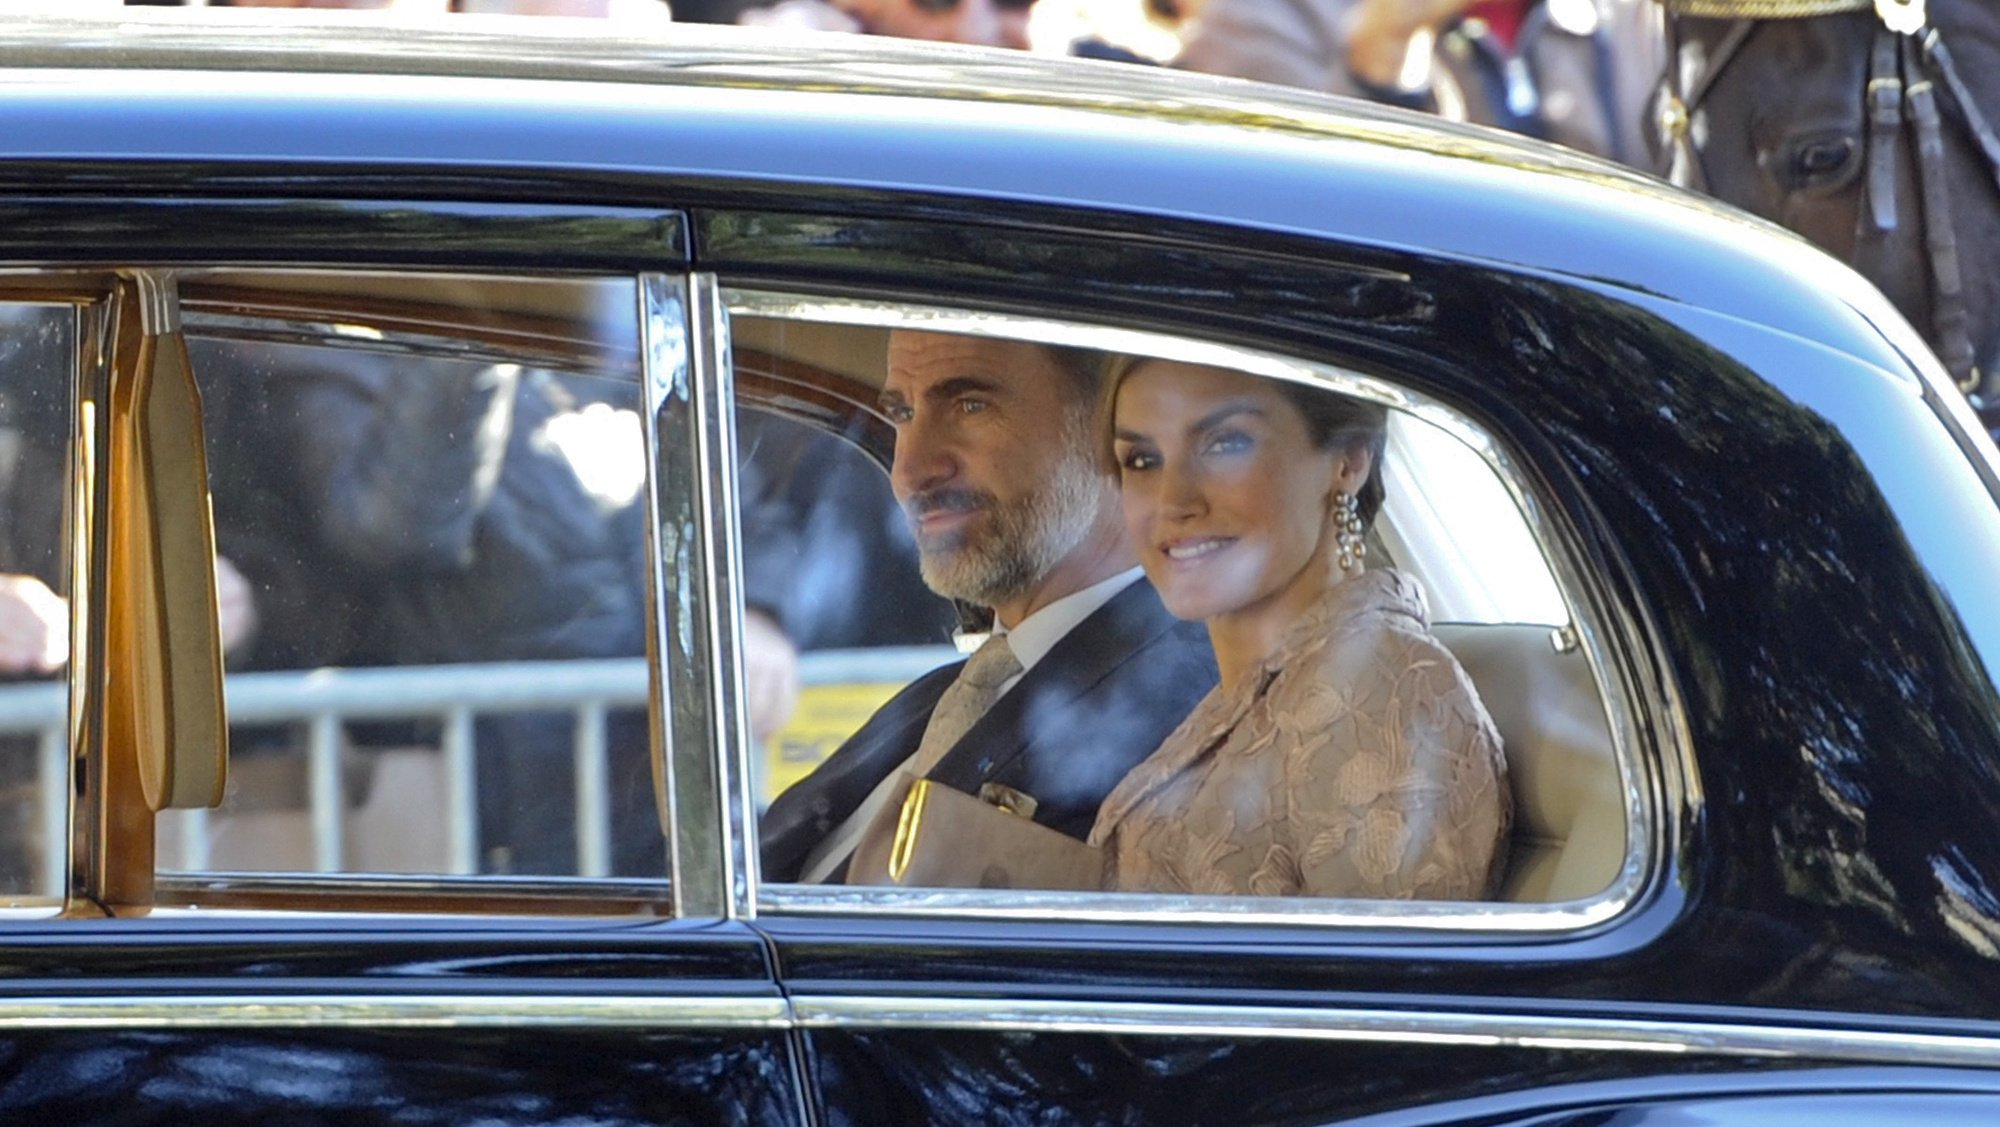 King of Spain Felipe VI (L) and Queen of Spain Letizia Ortiz Rocasolano (R) arrive for a reception at Porto City Hall in Porto, Portugal, 28 November 2016. The kings of Spain will begin a three-day state visit to Portugal today, which will also take them to Porto, Guimaraes and Lisbon, where Felipe VI will address to the Assembly of the Republic on Wednesday. FERNANDO VELUDO/LUSA